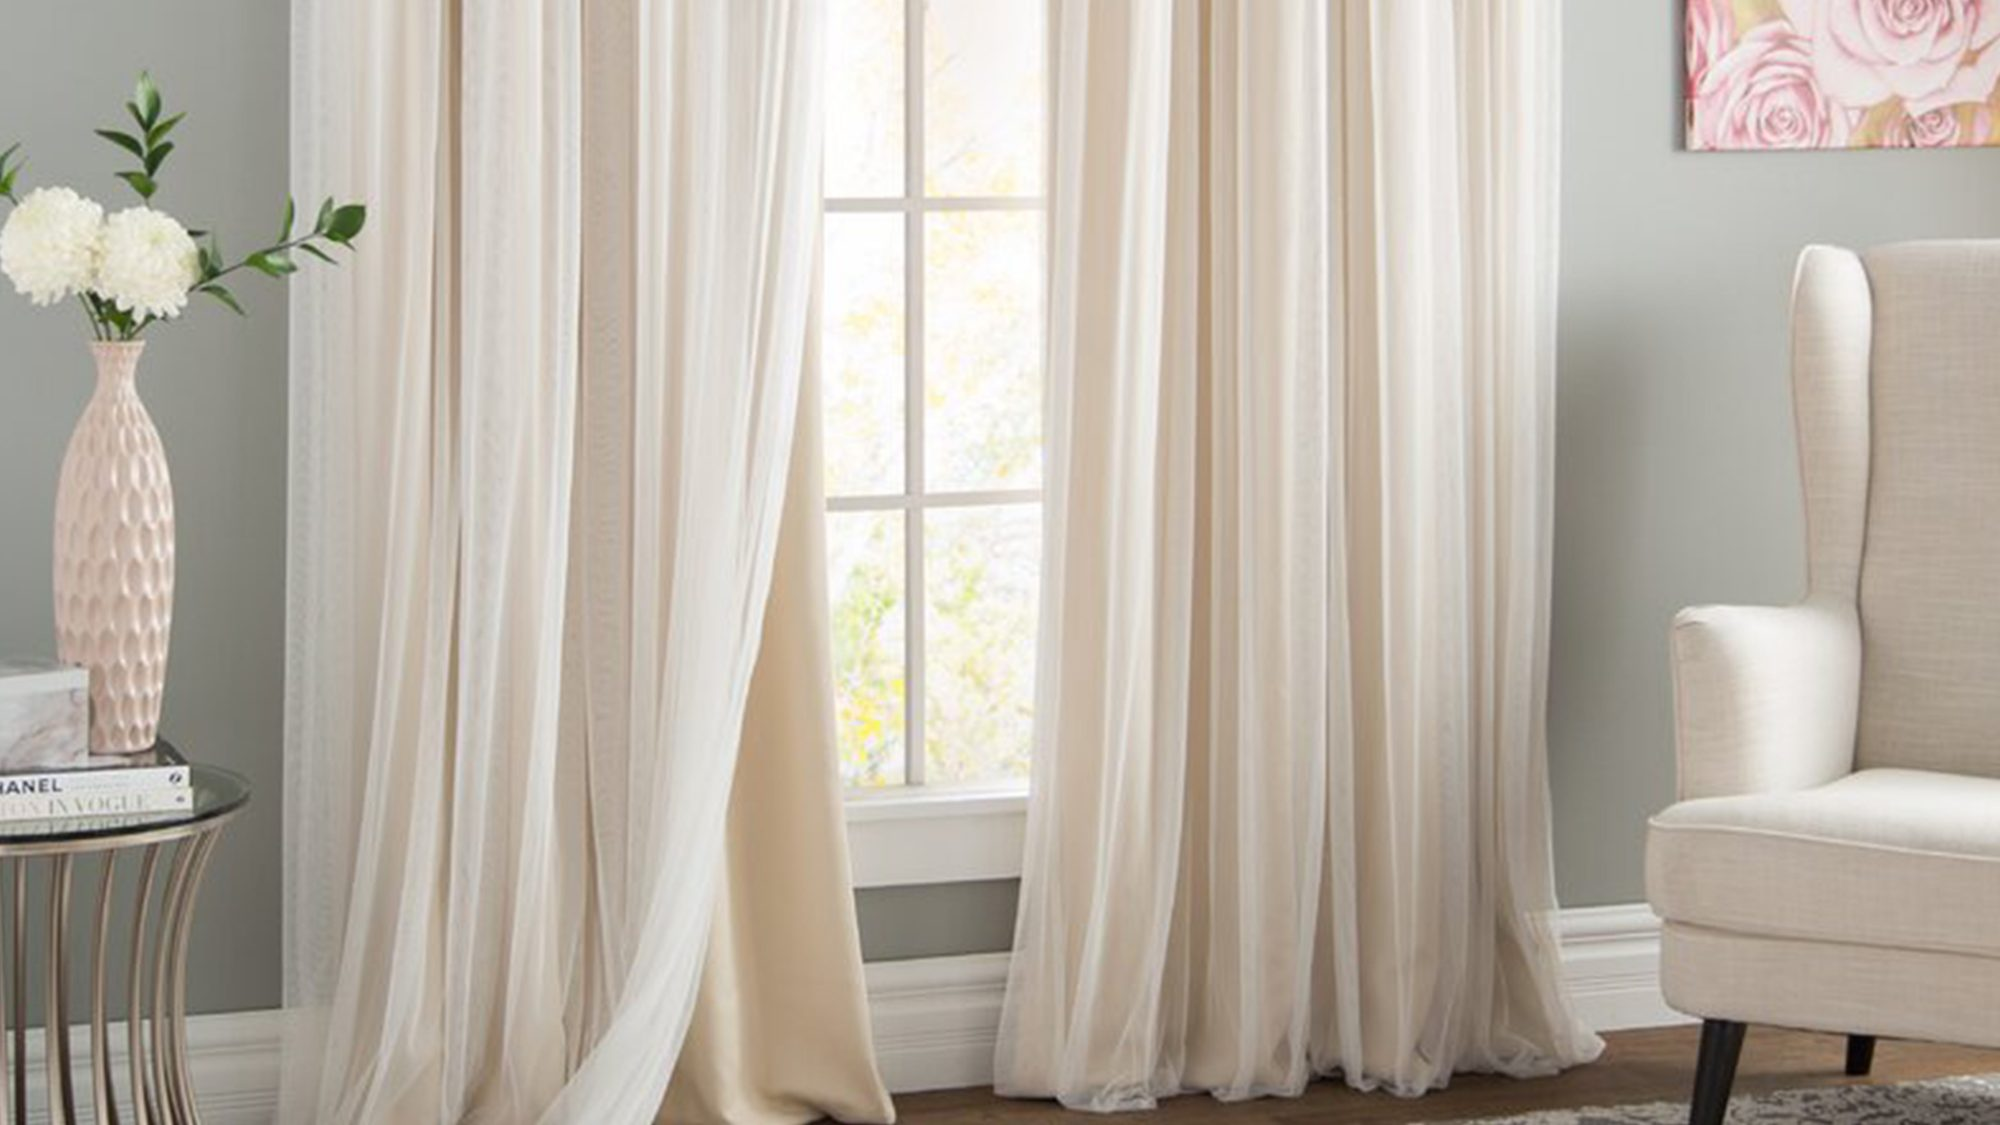 7 Best Blackout Curtains Of 2020 According To Reviews Real Simple